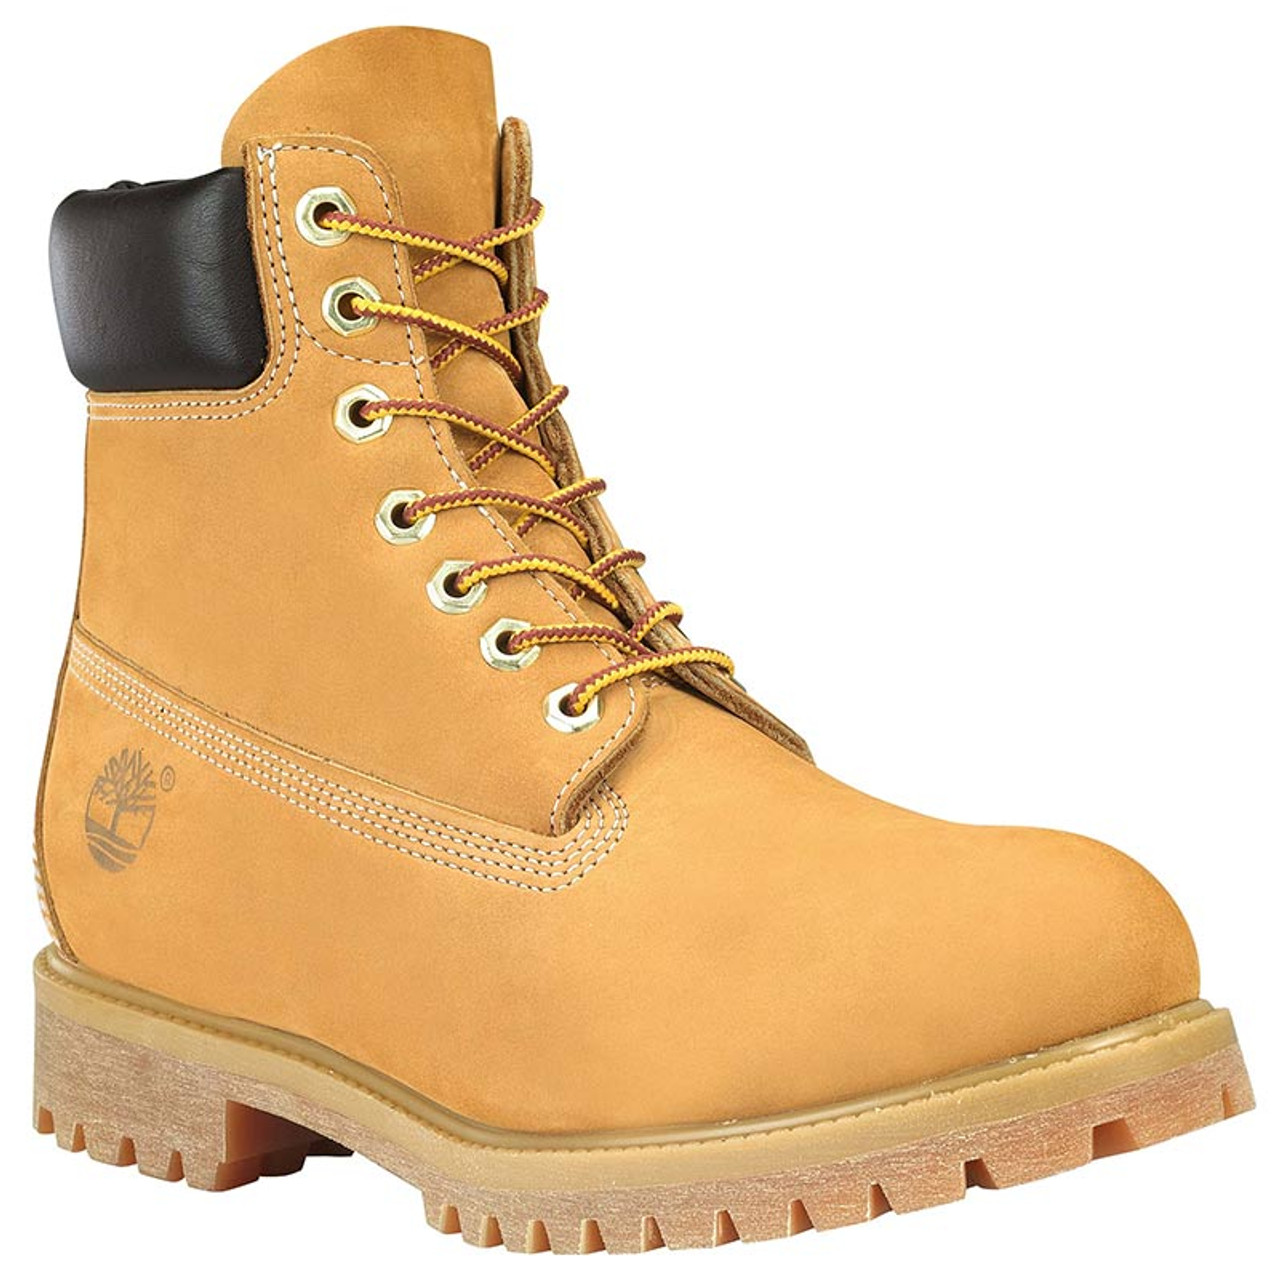 5317cab86a4 Timberland 10061 ICON Premium Leather Work Boots